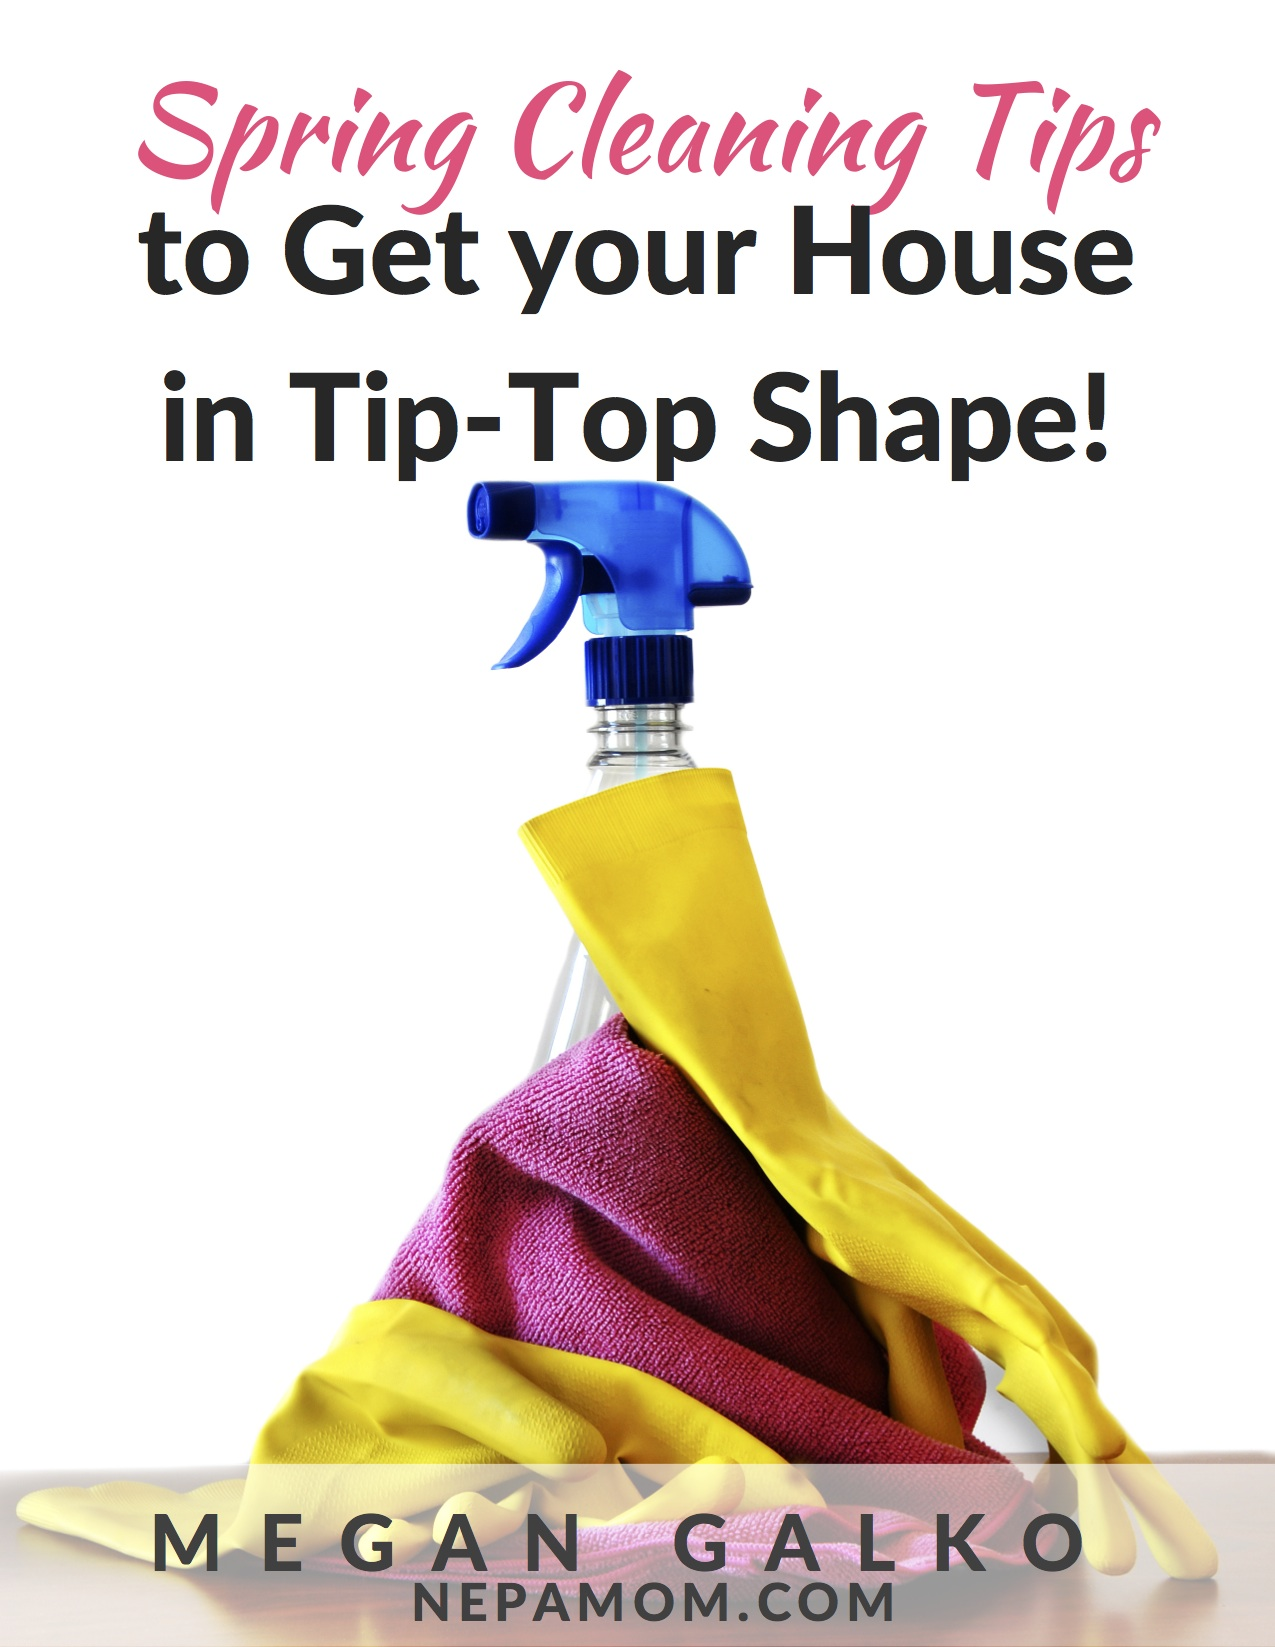 Spring Cleaning Tips to Get Your House In Tip Top Shape!